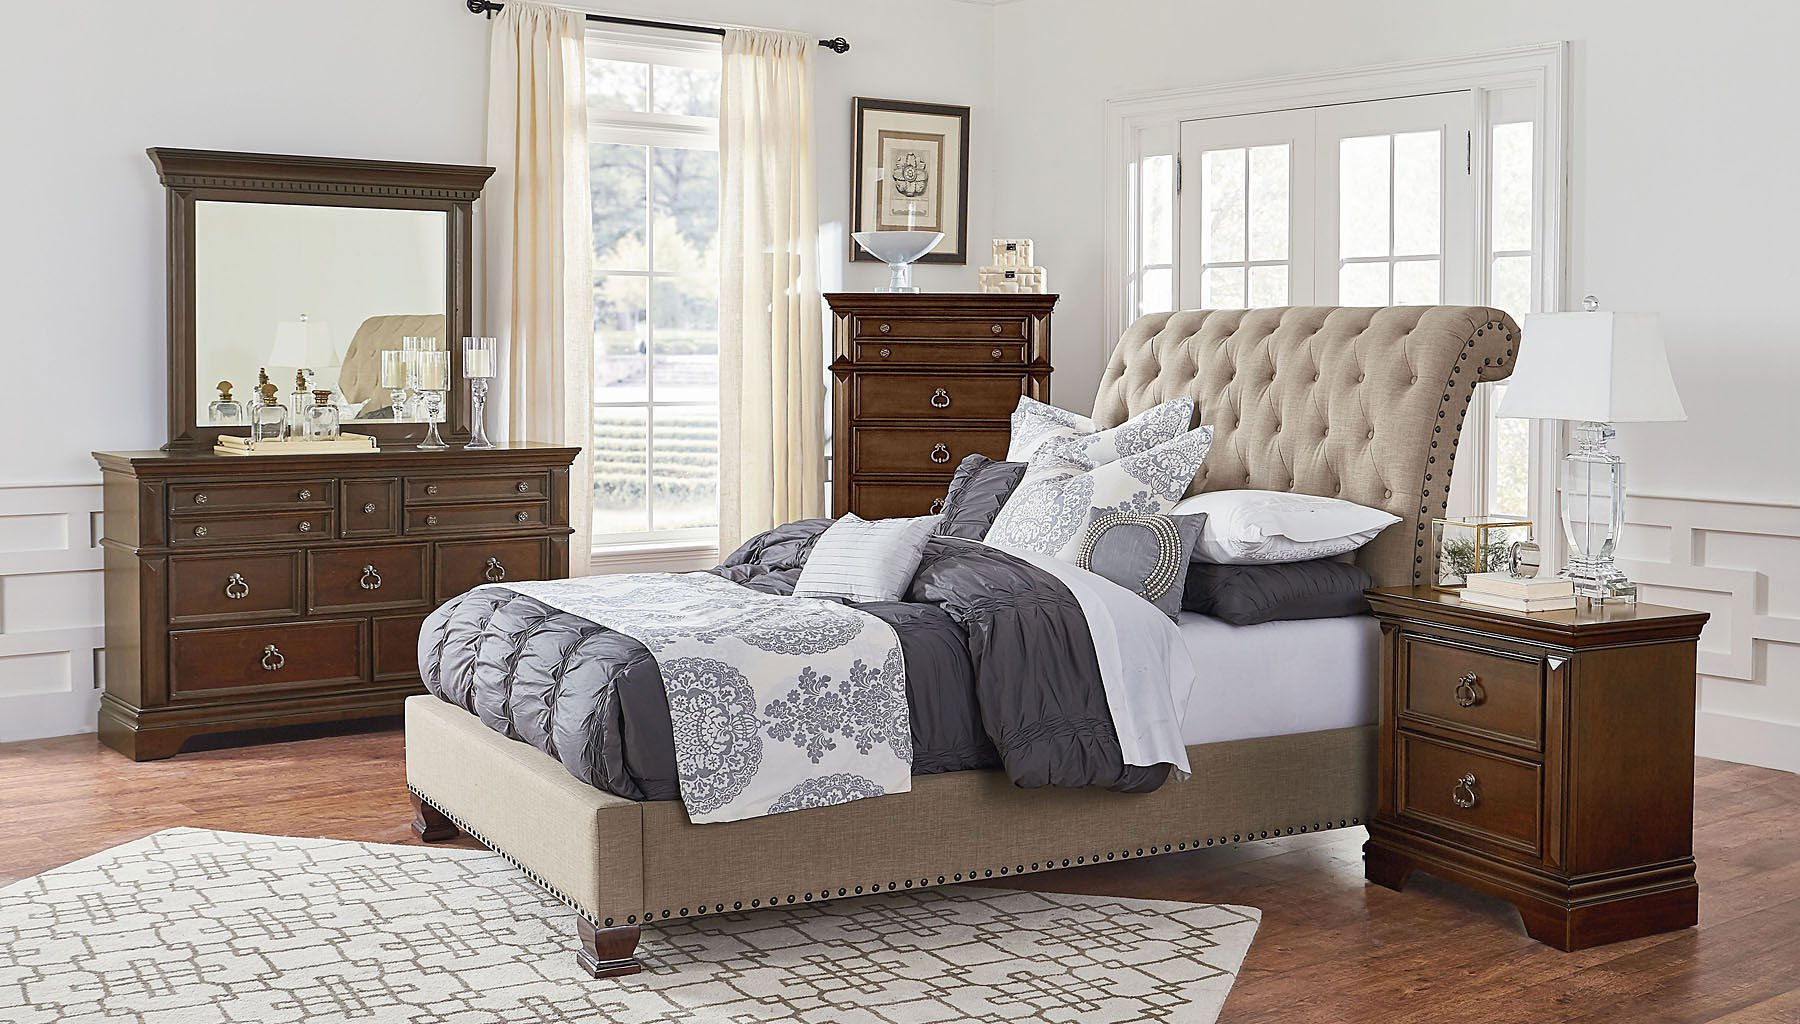 Inspiring Upholstered Bedroom Set Plans Free